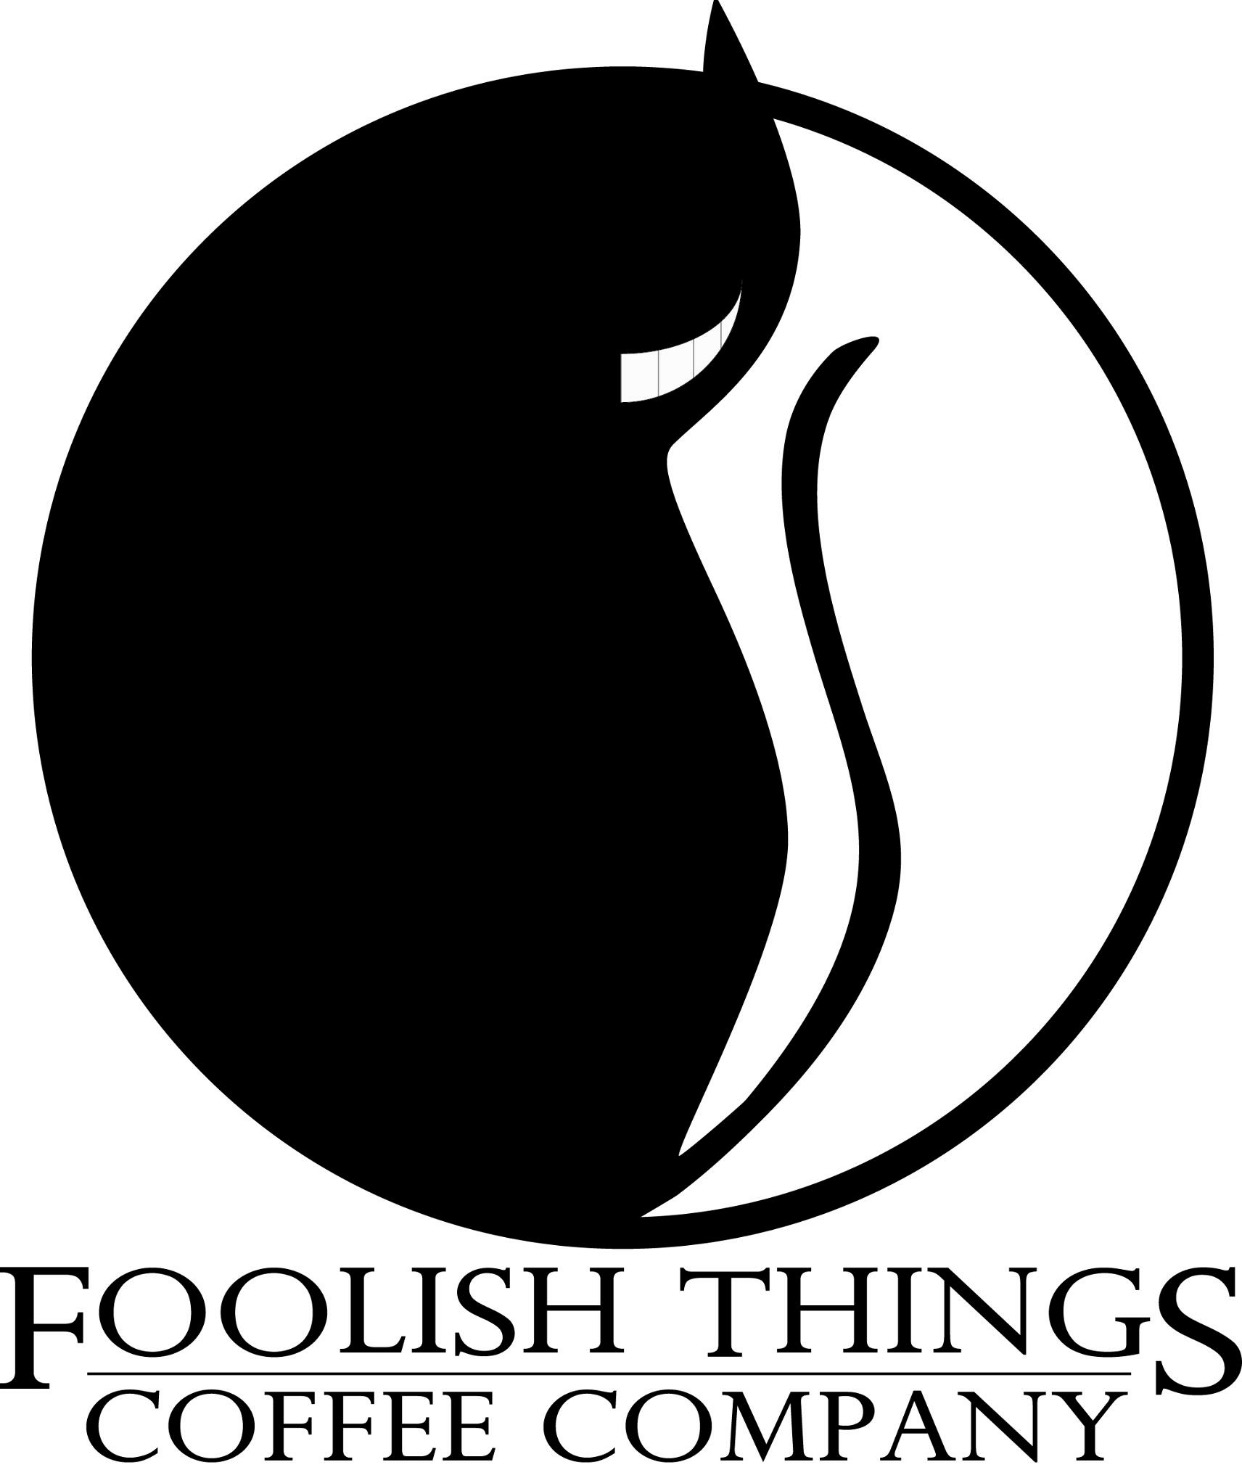 Foolish things logo.jpg